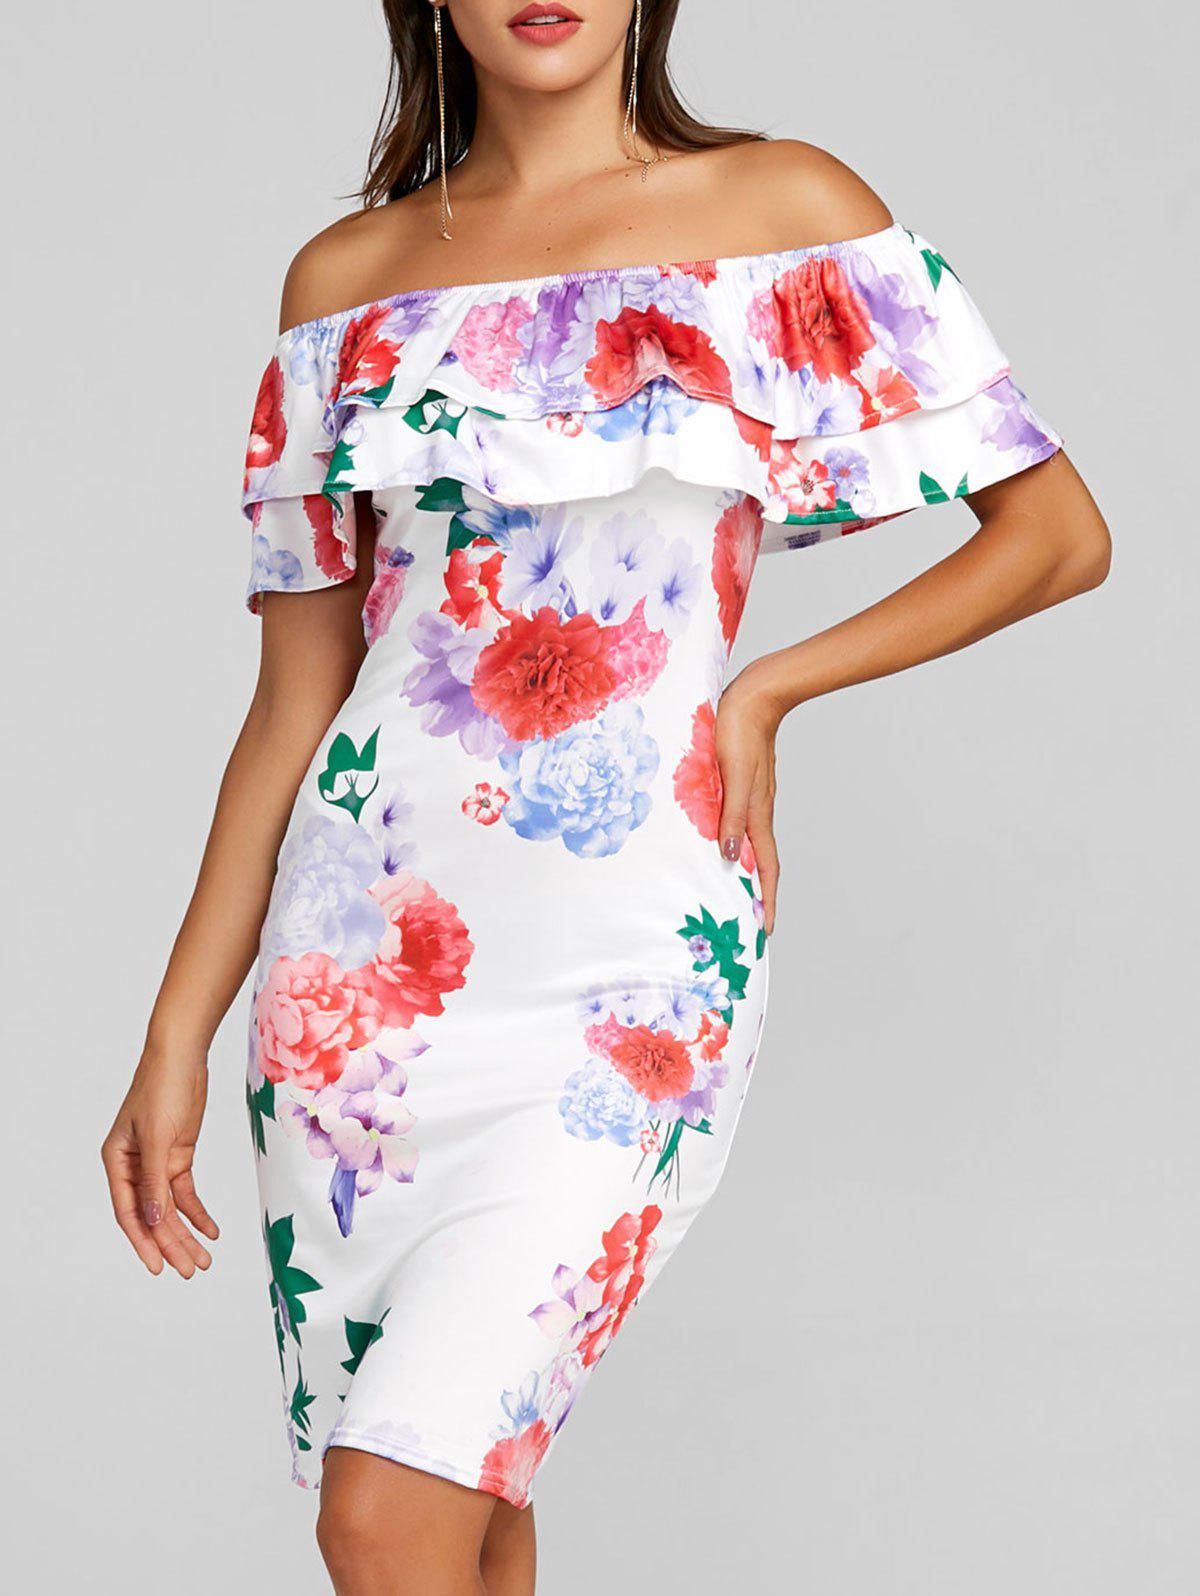 Trendy Ruffle Printed Off the Shoulder Party Dress